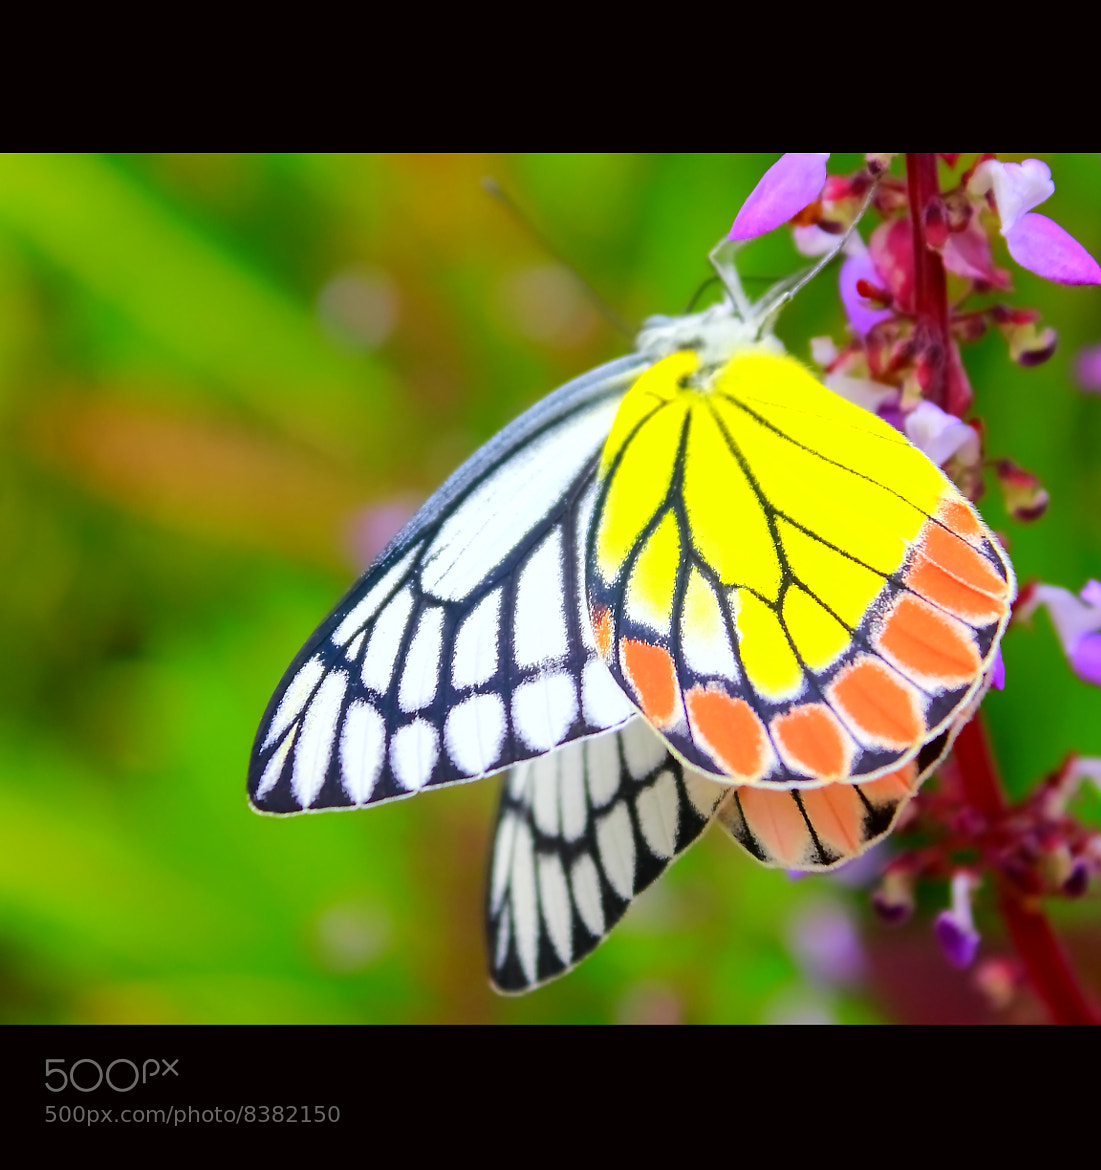 Photograph jezebel butterfly by Arun P. Nair on 500px